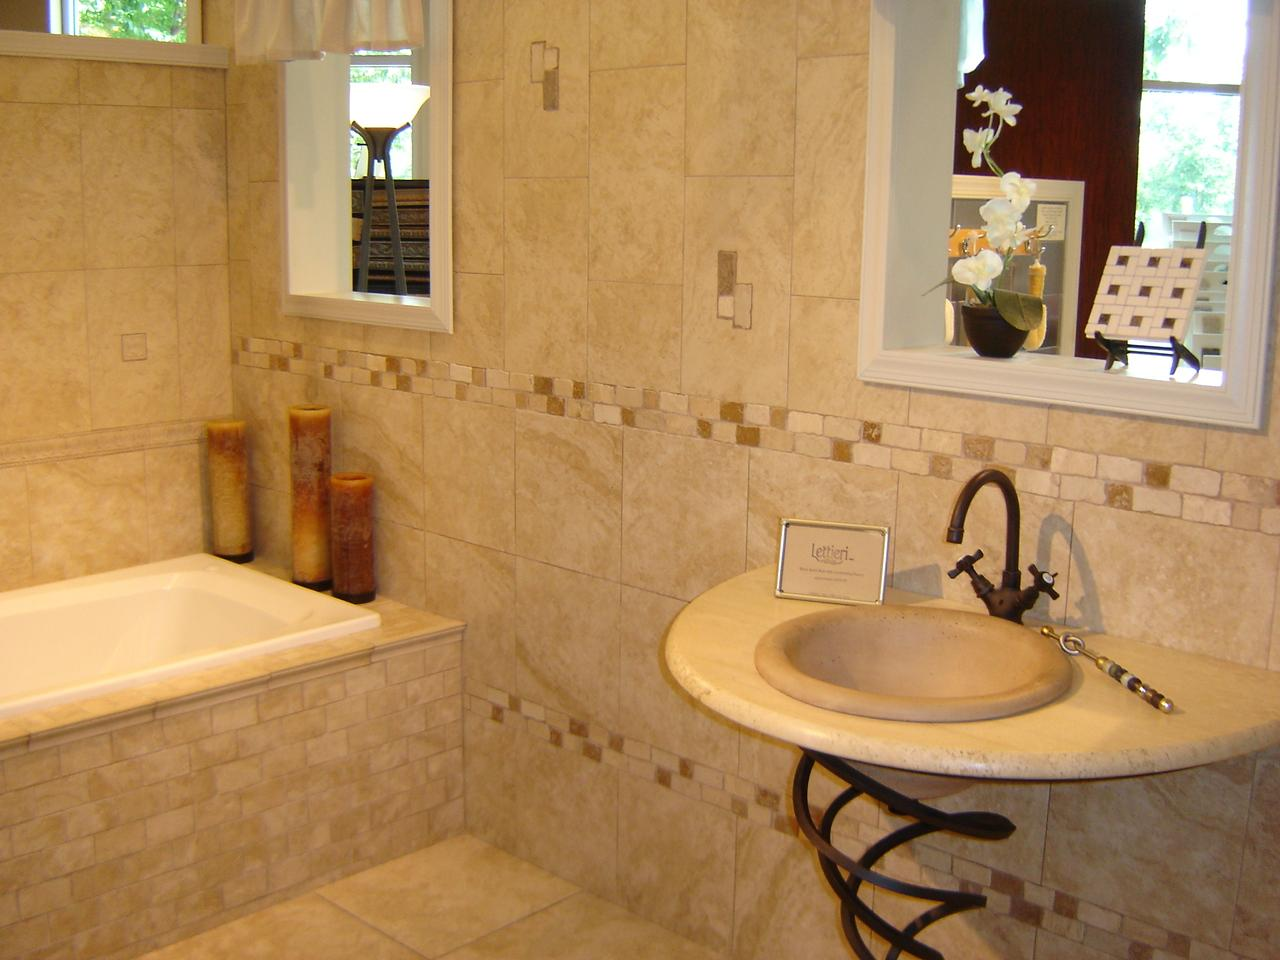 Bathroom Tile Designs For Small Bathrooms Large And Beautiful Photos Photo To Select Bathroom Tile Designs For Small Bathrooms Design Your Home